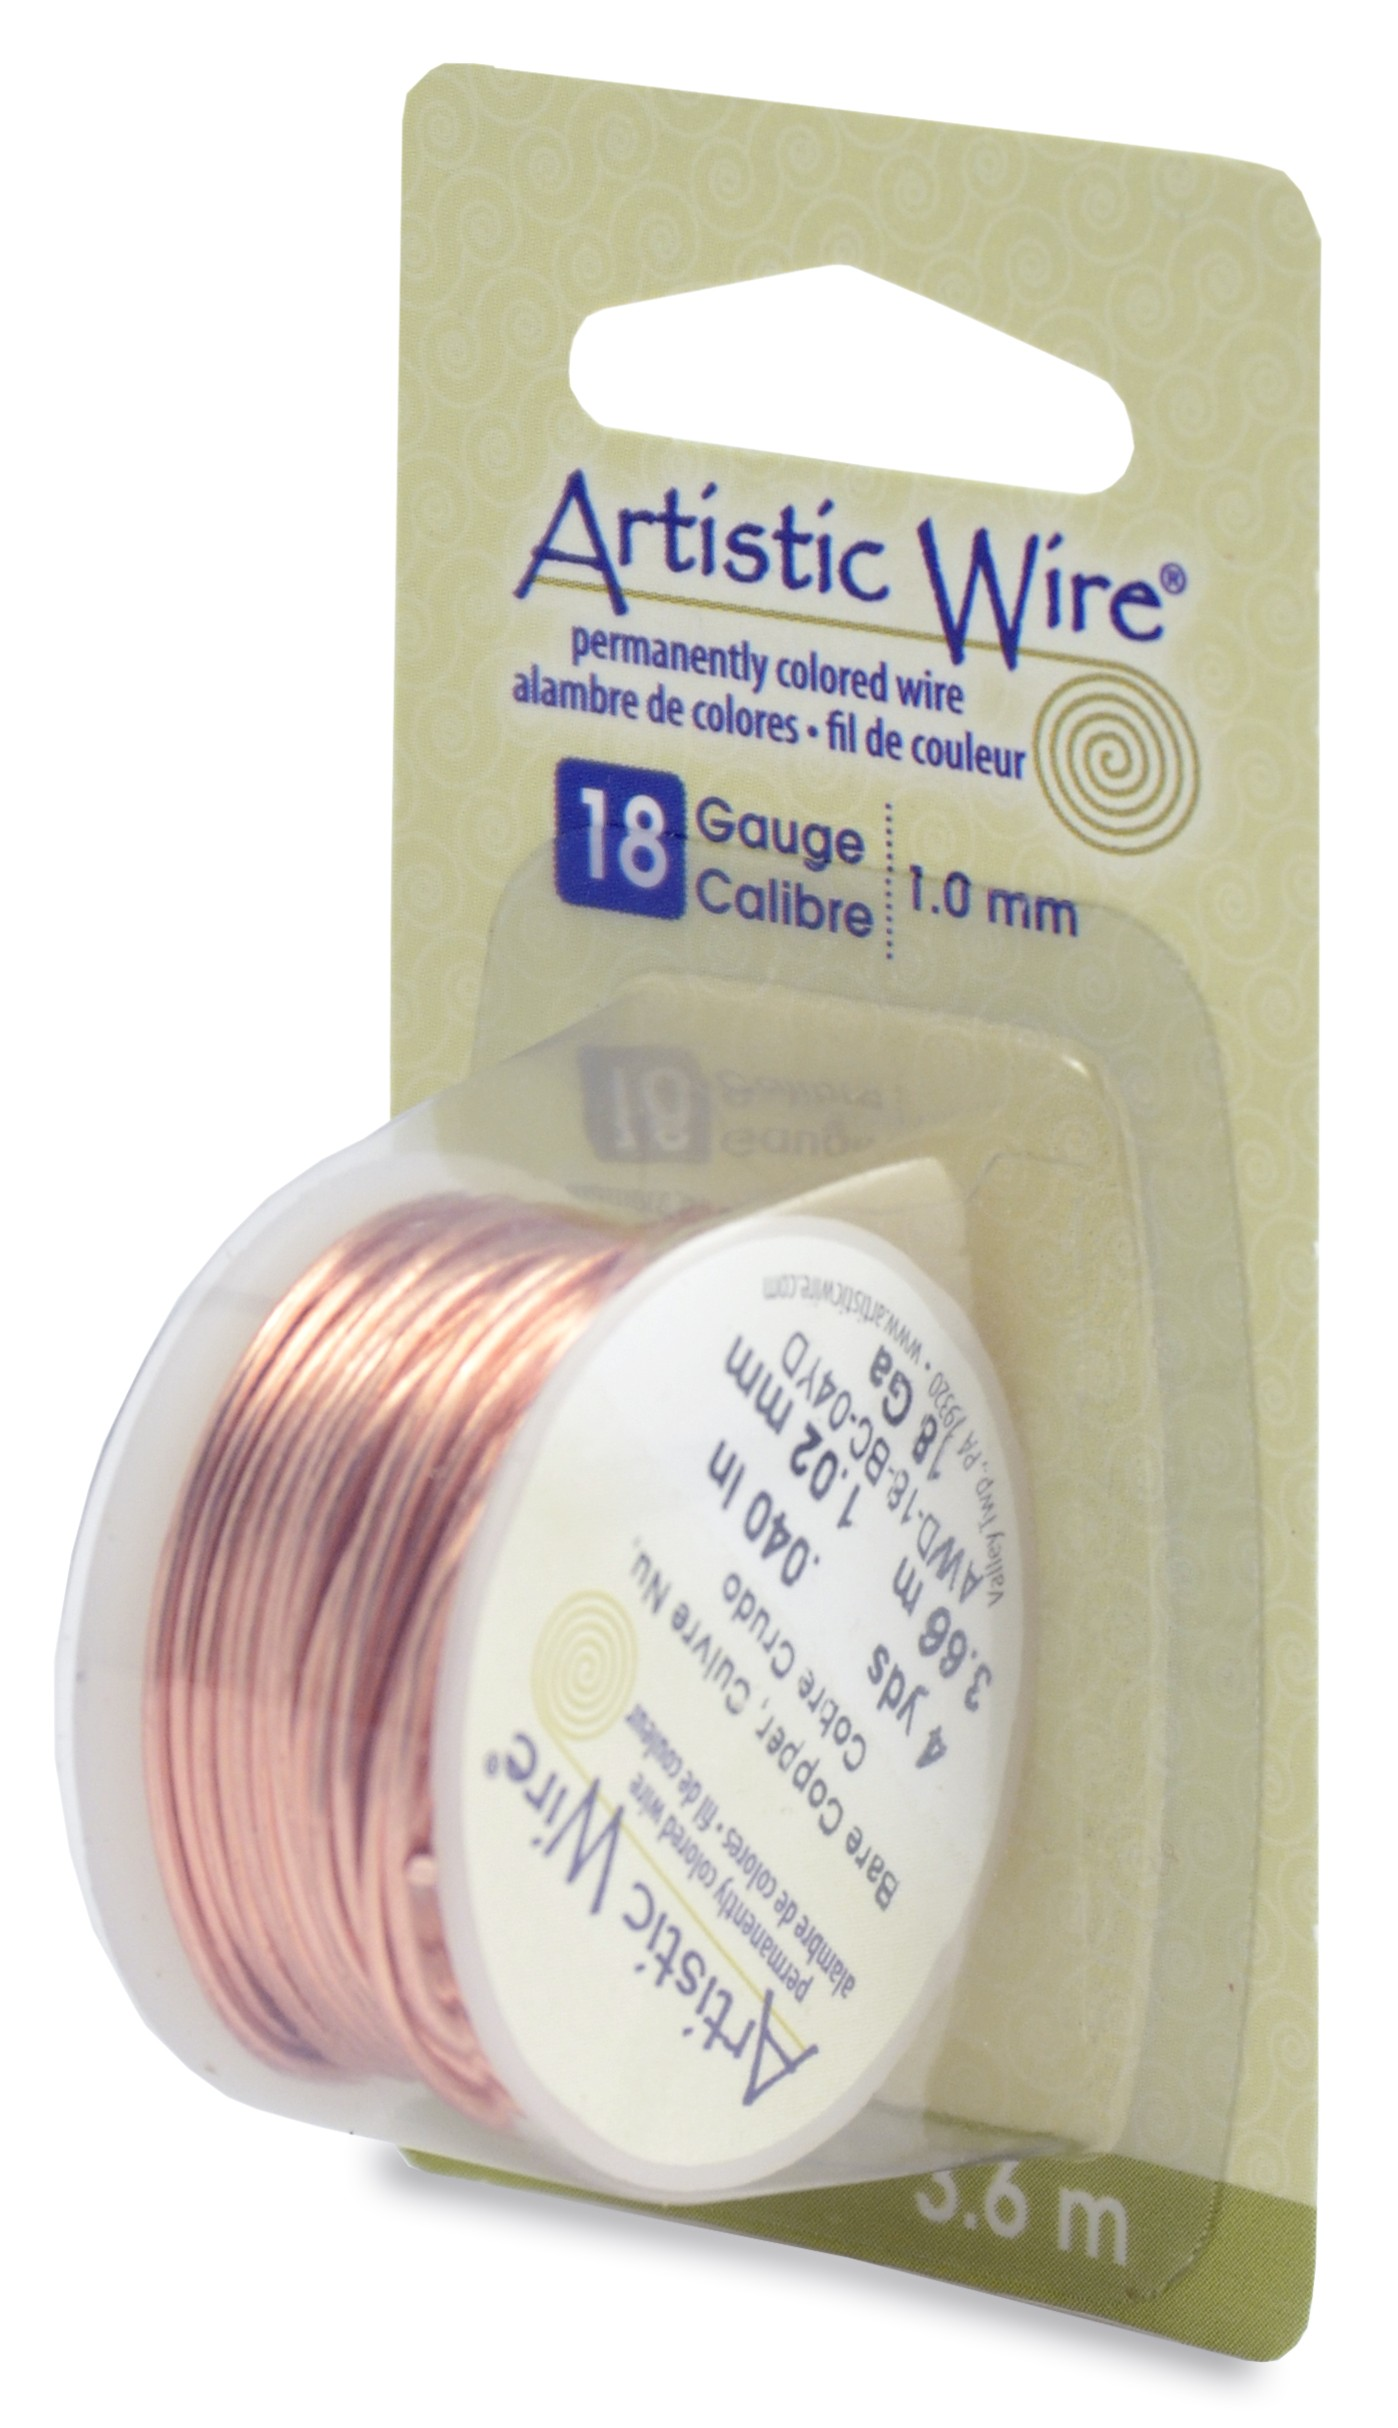 Artistic Wire, 18 Gauge (1.0 mm), Bare Copper, 4 yd (3.6 m)